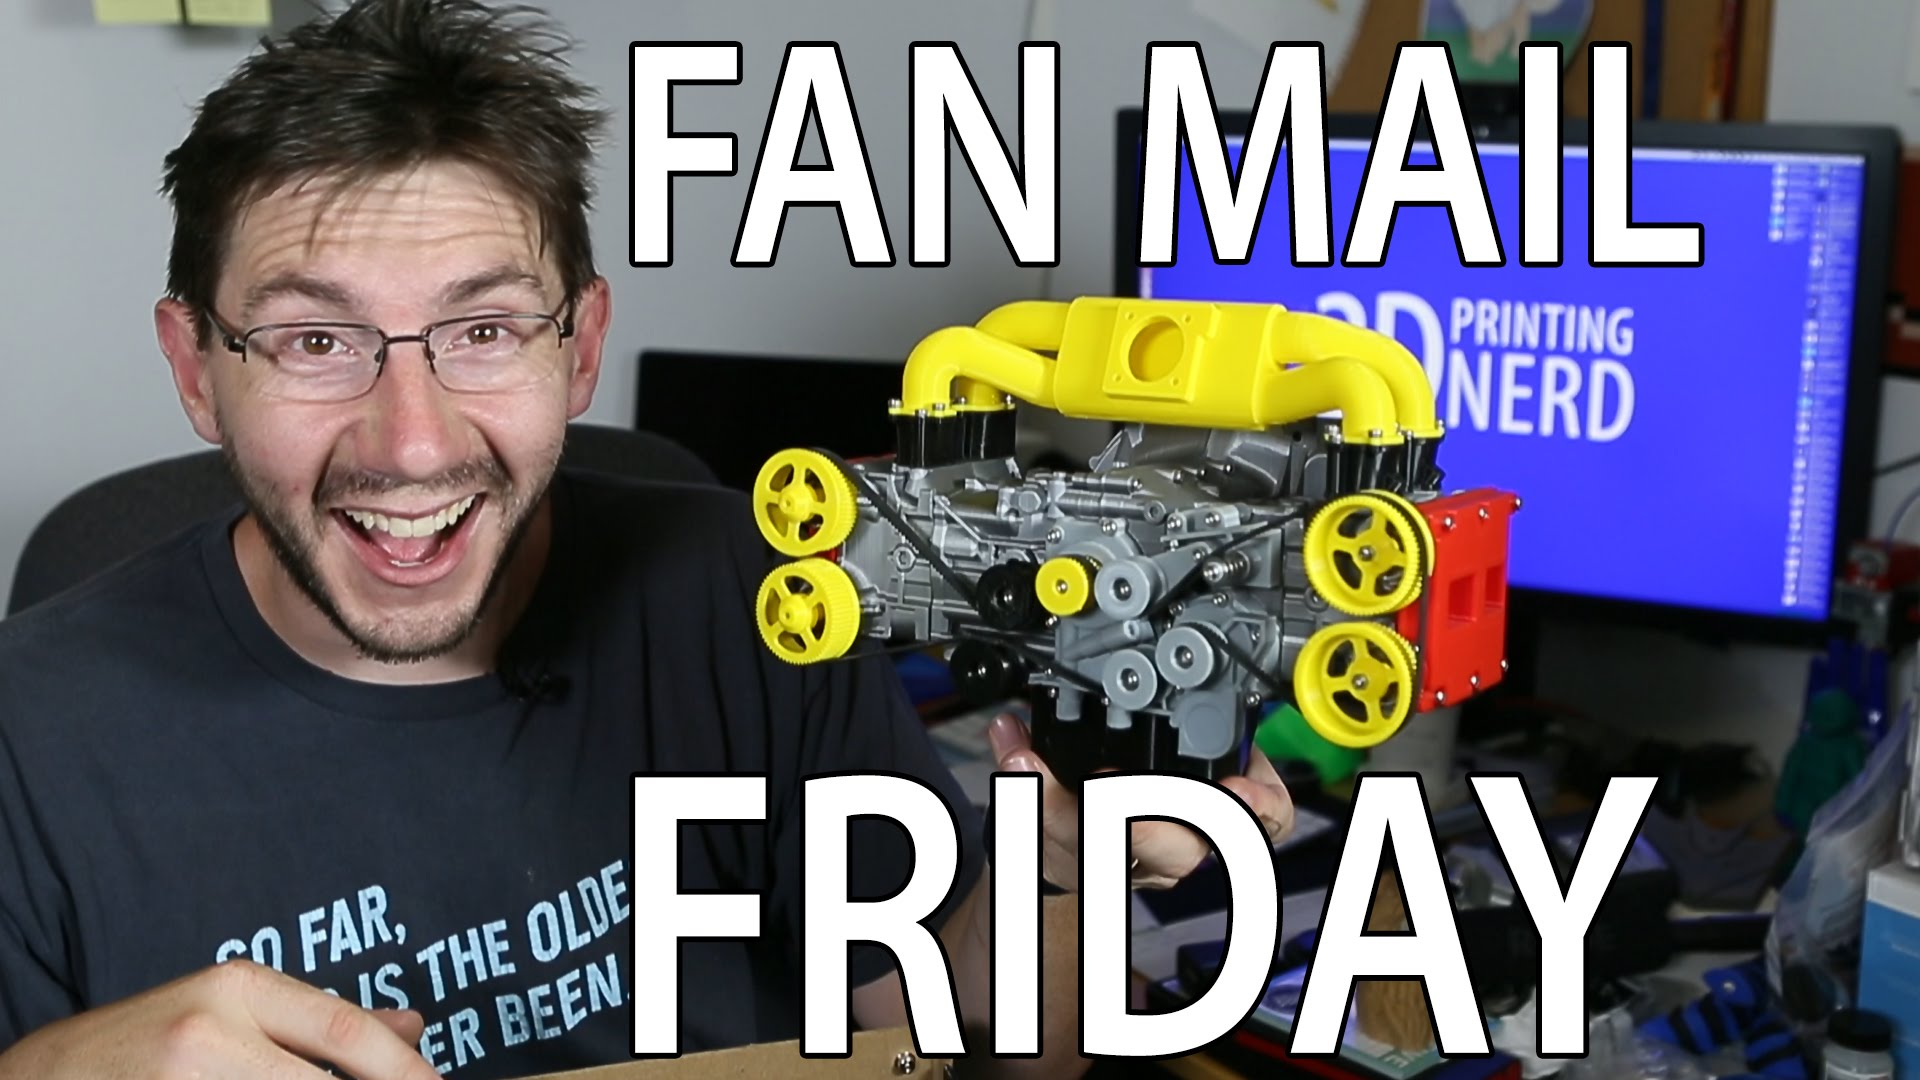 Fan Mail Friday – ON A FRIDAY!